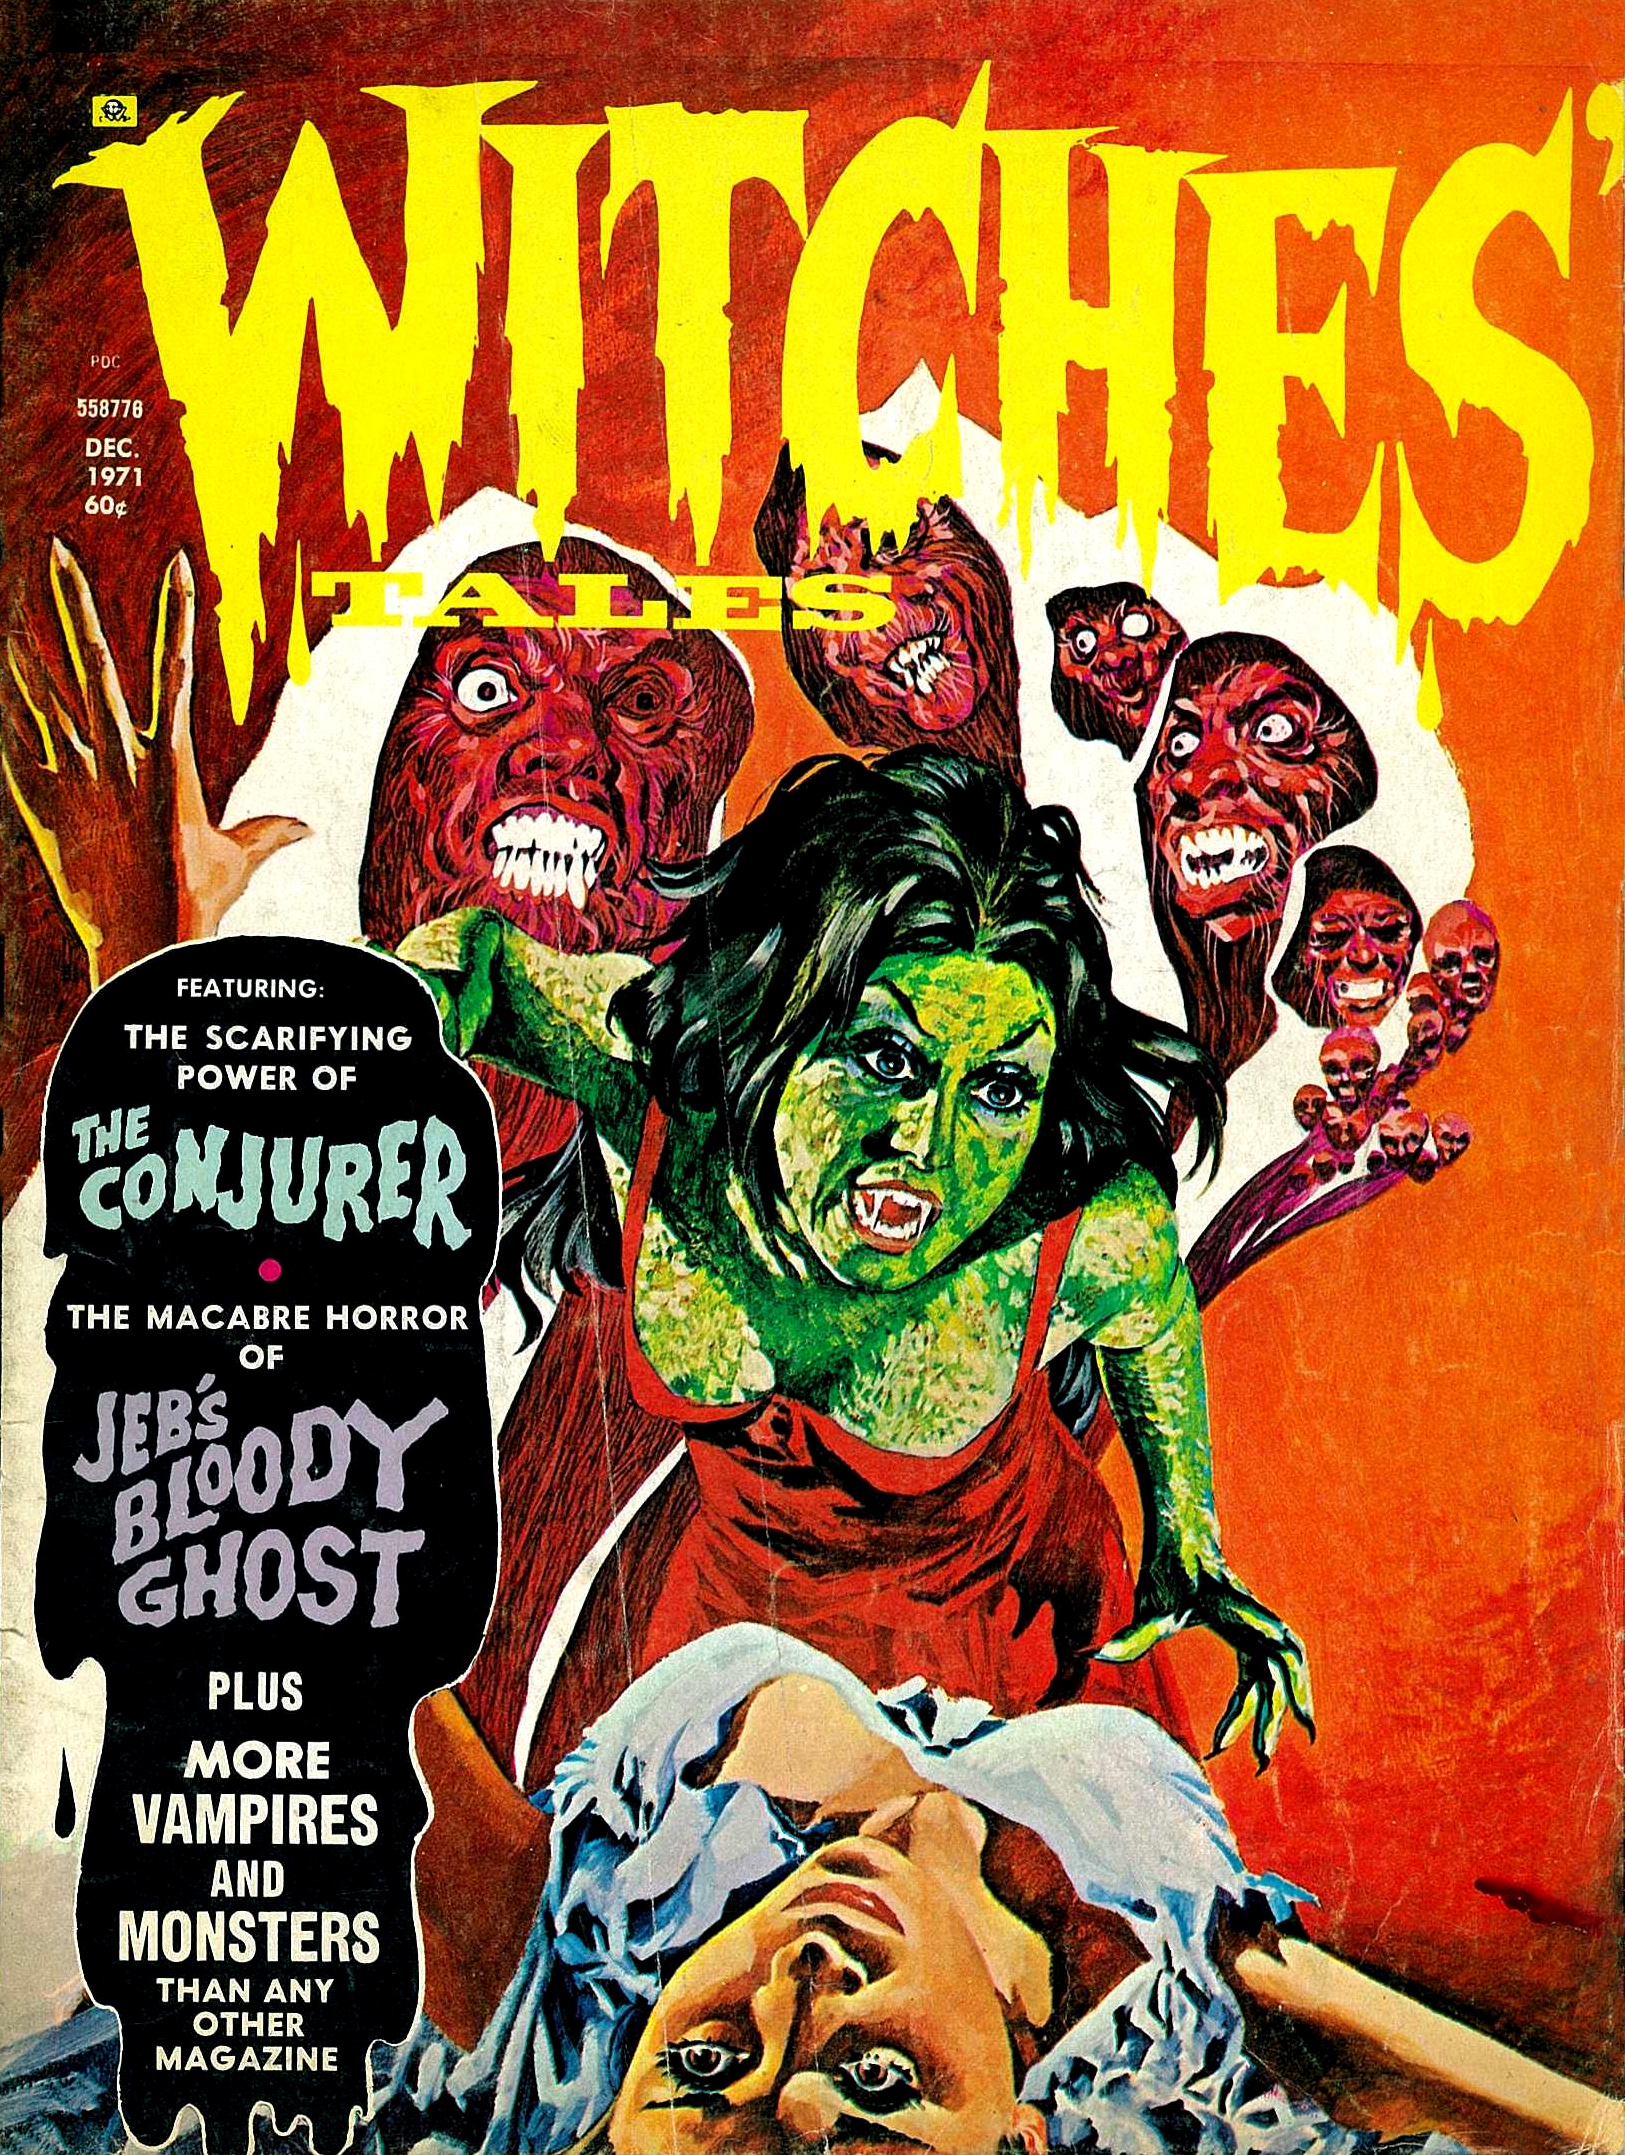 Witches' Tales Vol. 3 #6  (Eerie Publications 1971)